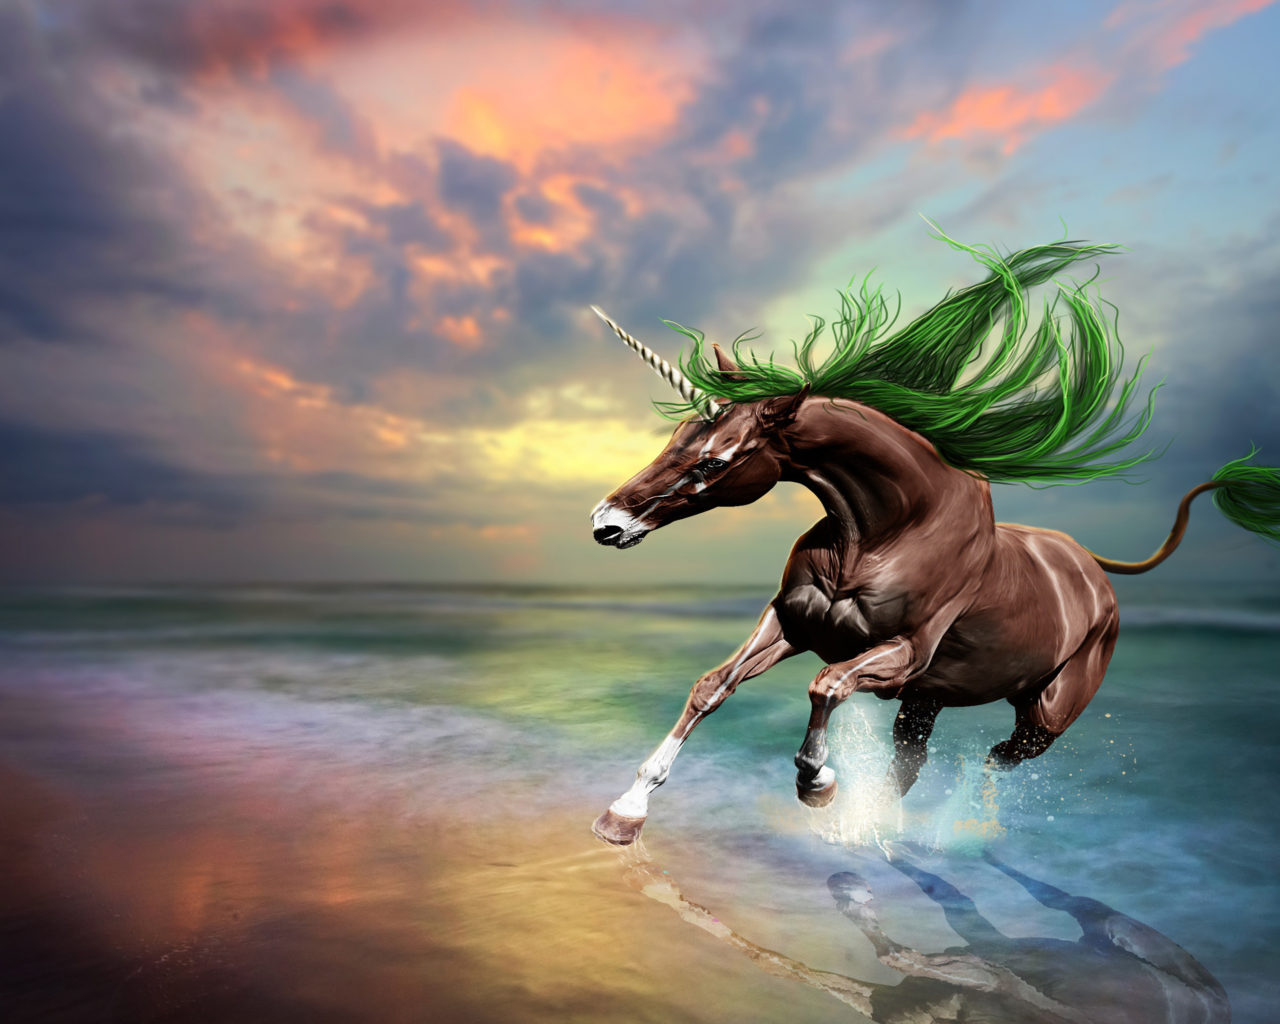 Hd Tiger Wallpapers For Iphone 5 Brown Horse Unicorn Art Digital Imaging Beach Sunset